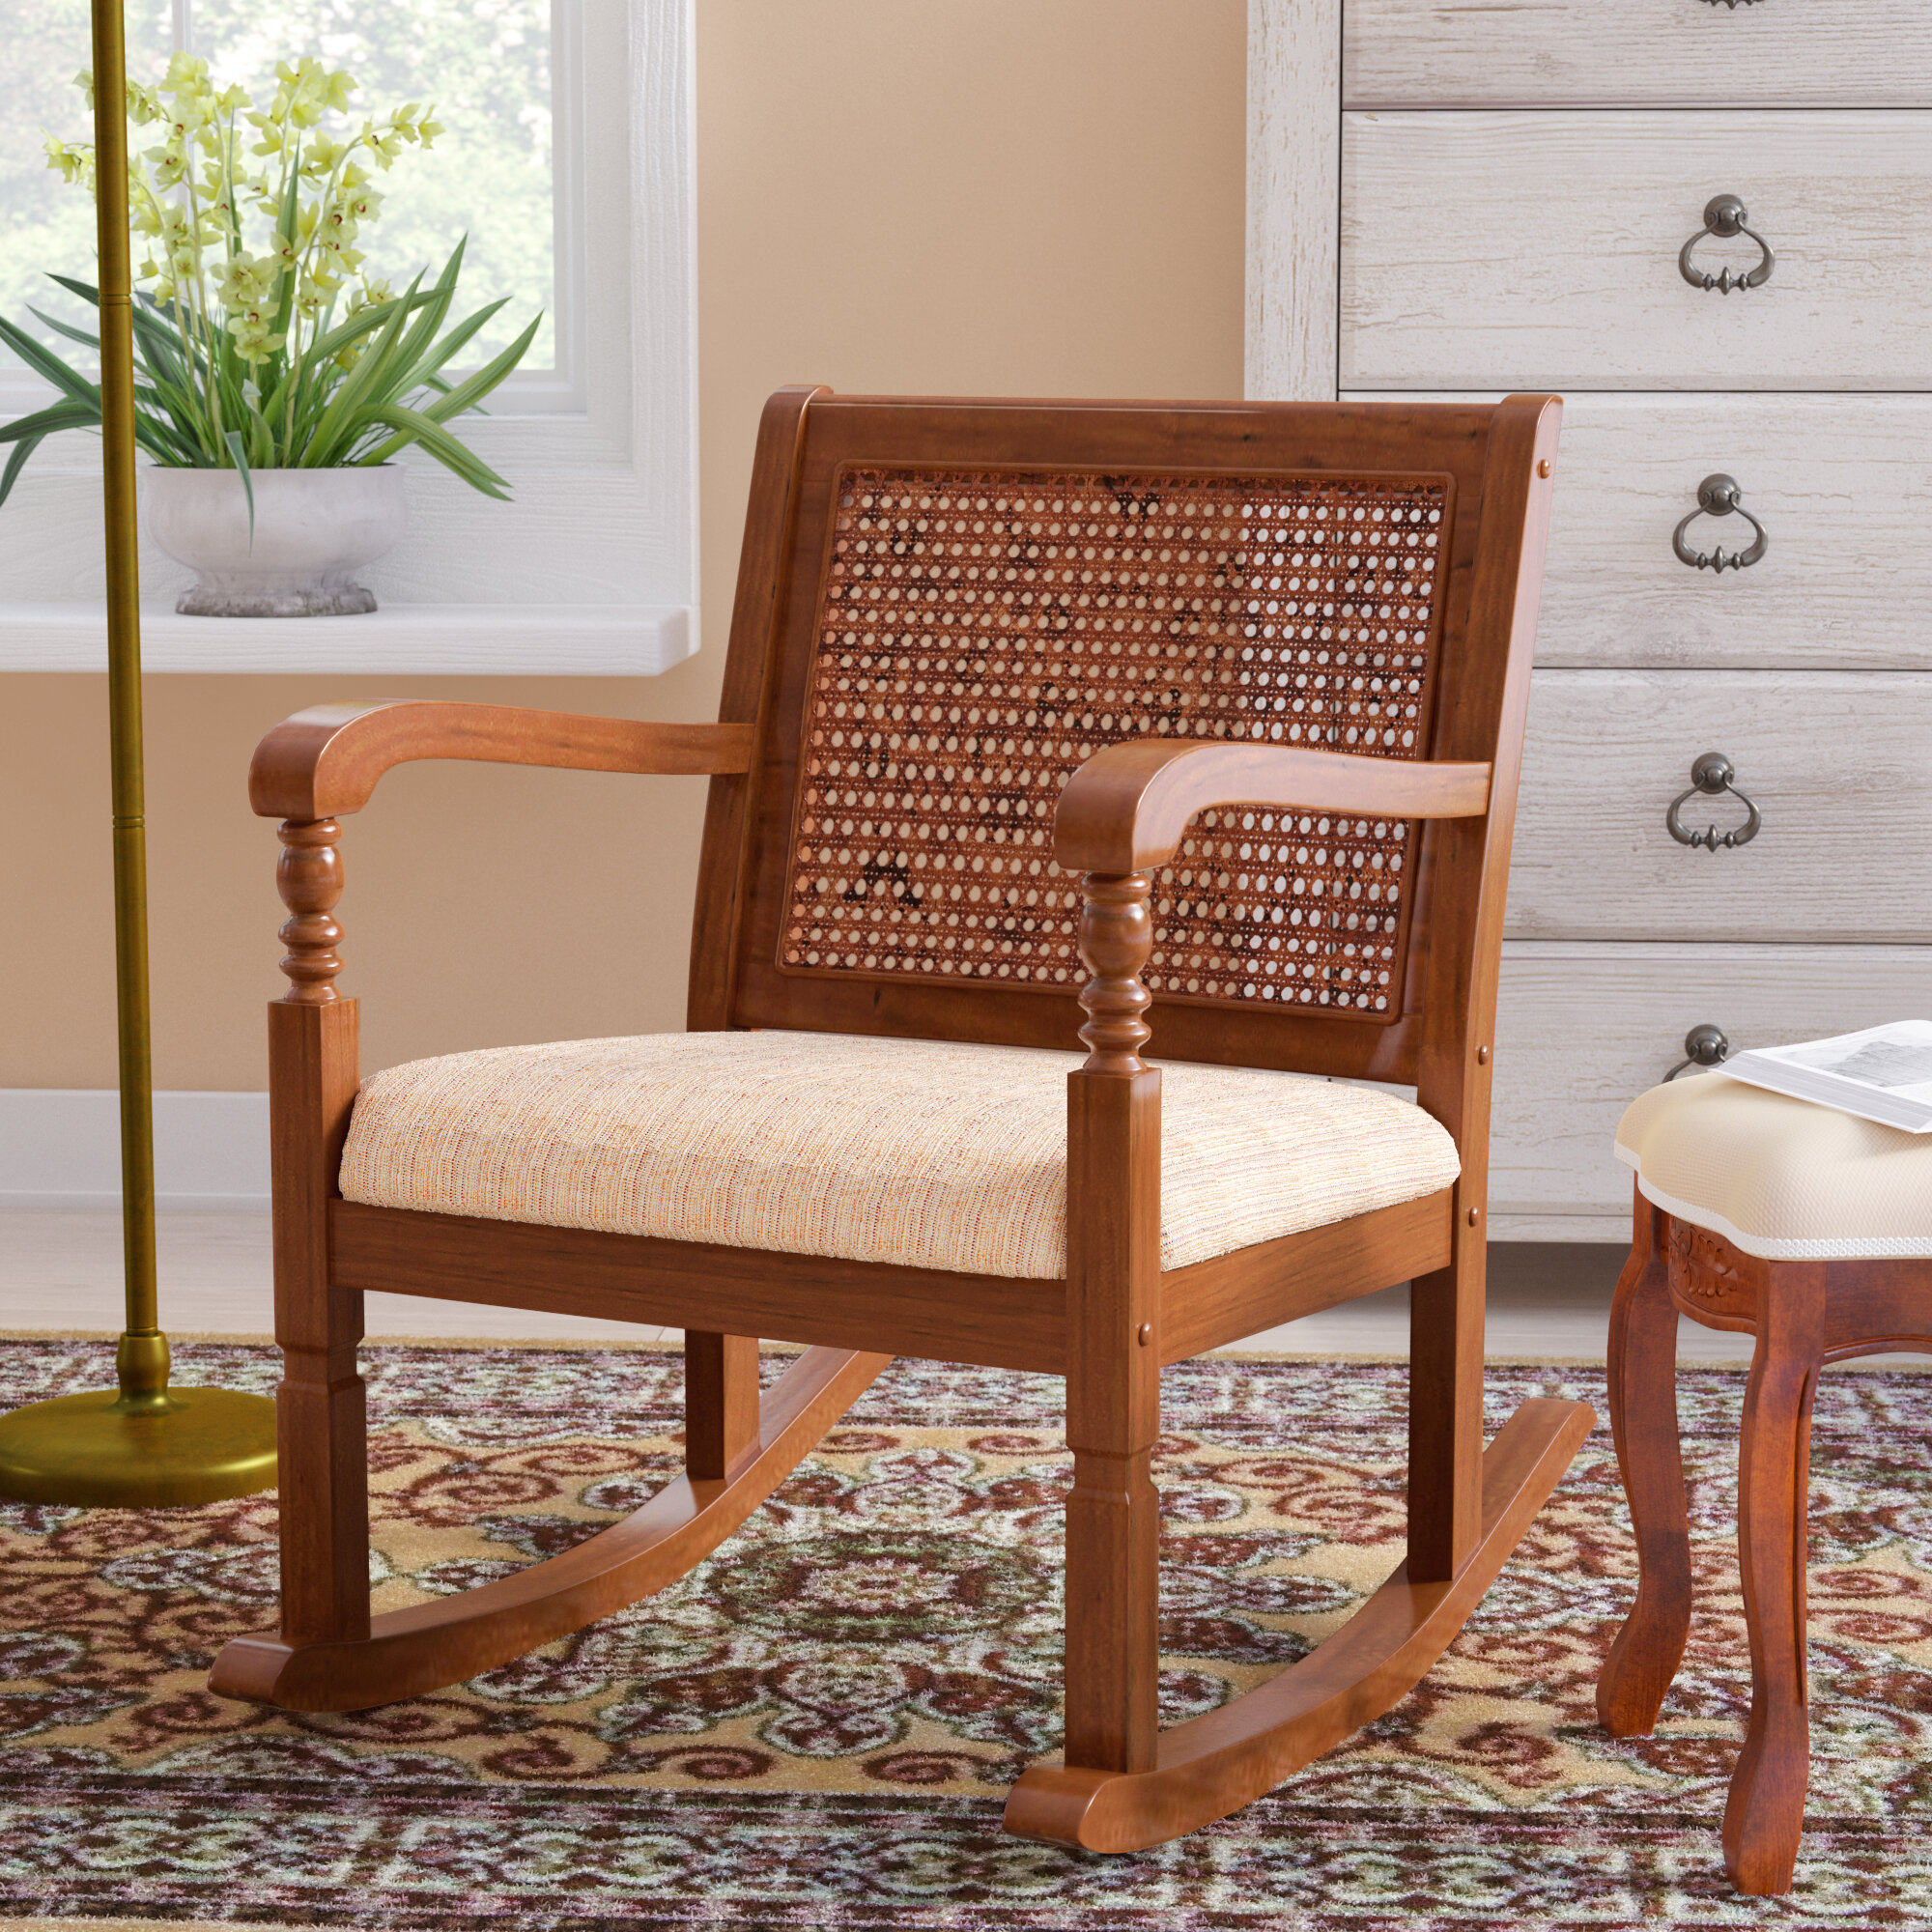 Three Posts Douglass Solid Pine Wood Rocking Chair with Fabric Seat u0026 Reviews | Wayfair & Three Posts Douglass Solid Pine Wood Rocking Chair with Fabric Seat ...